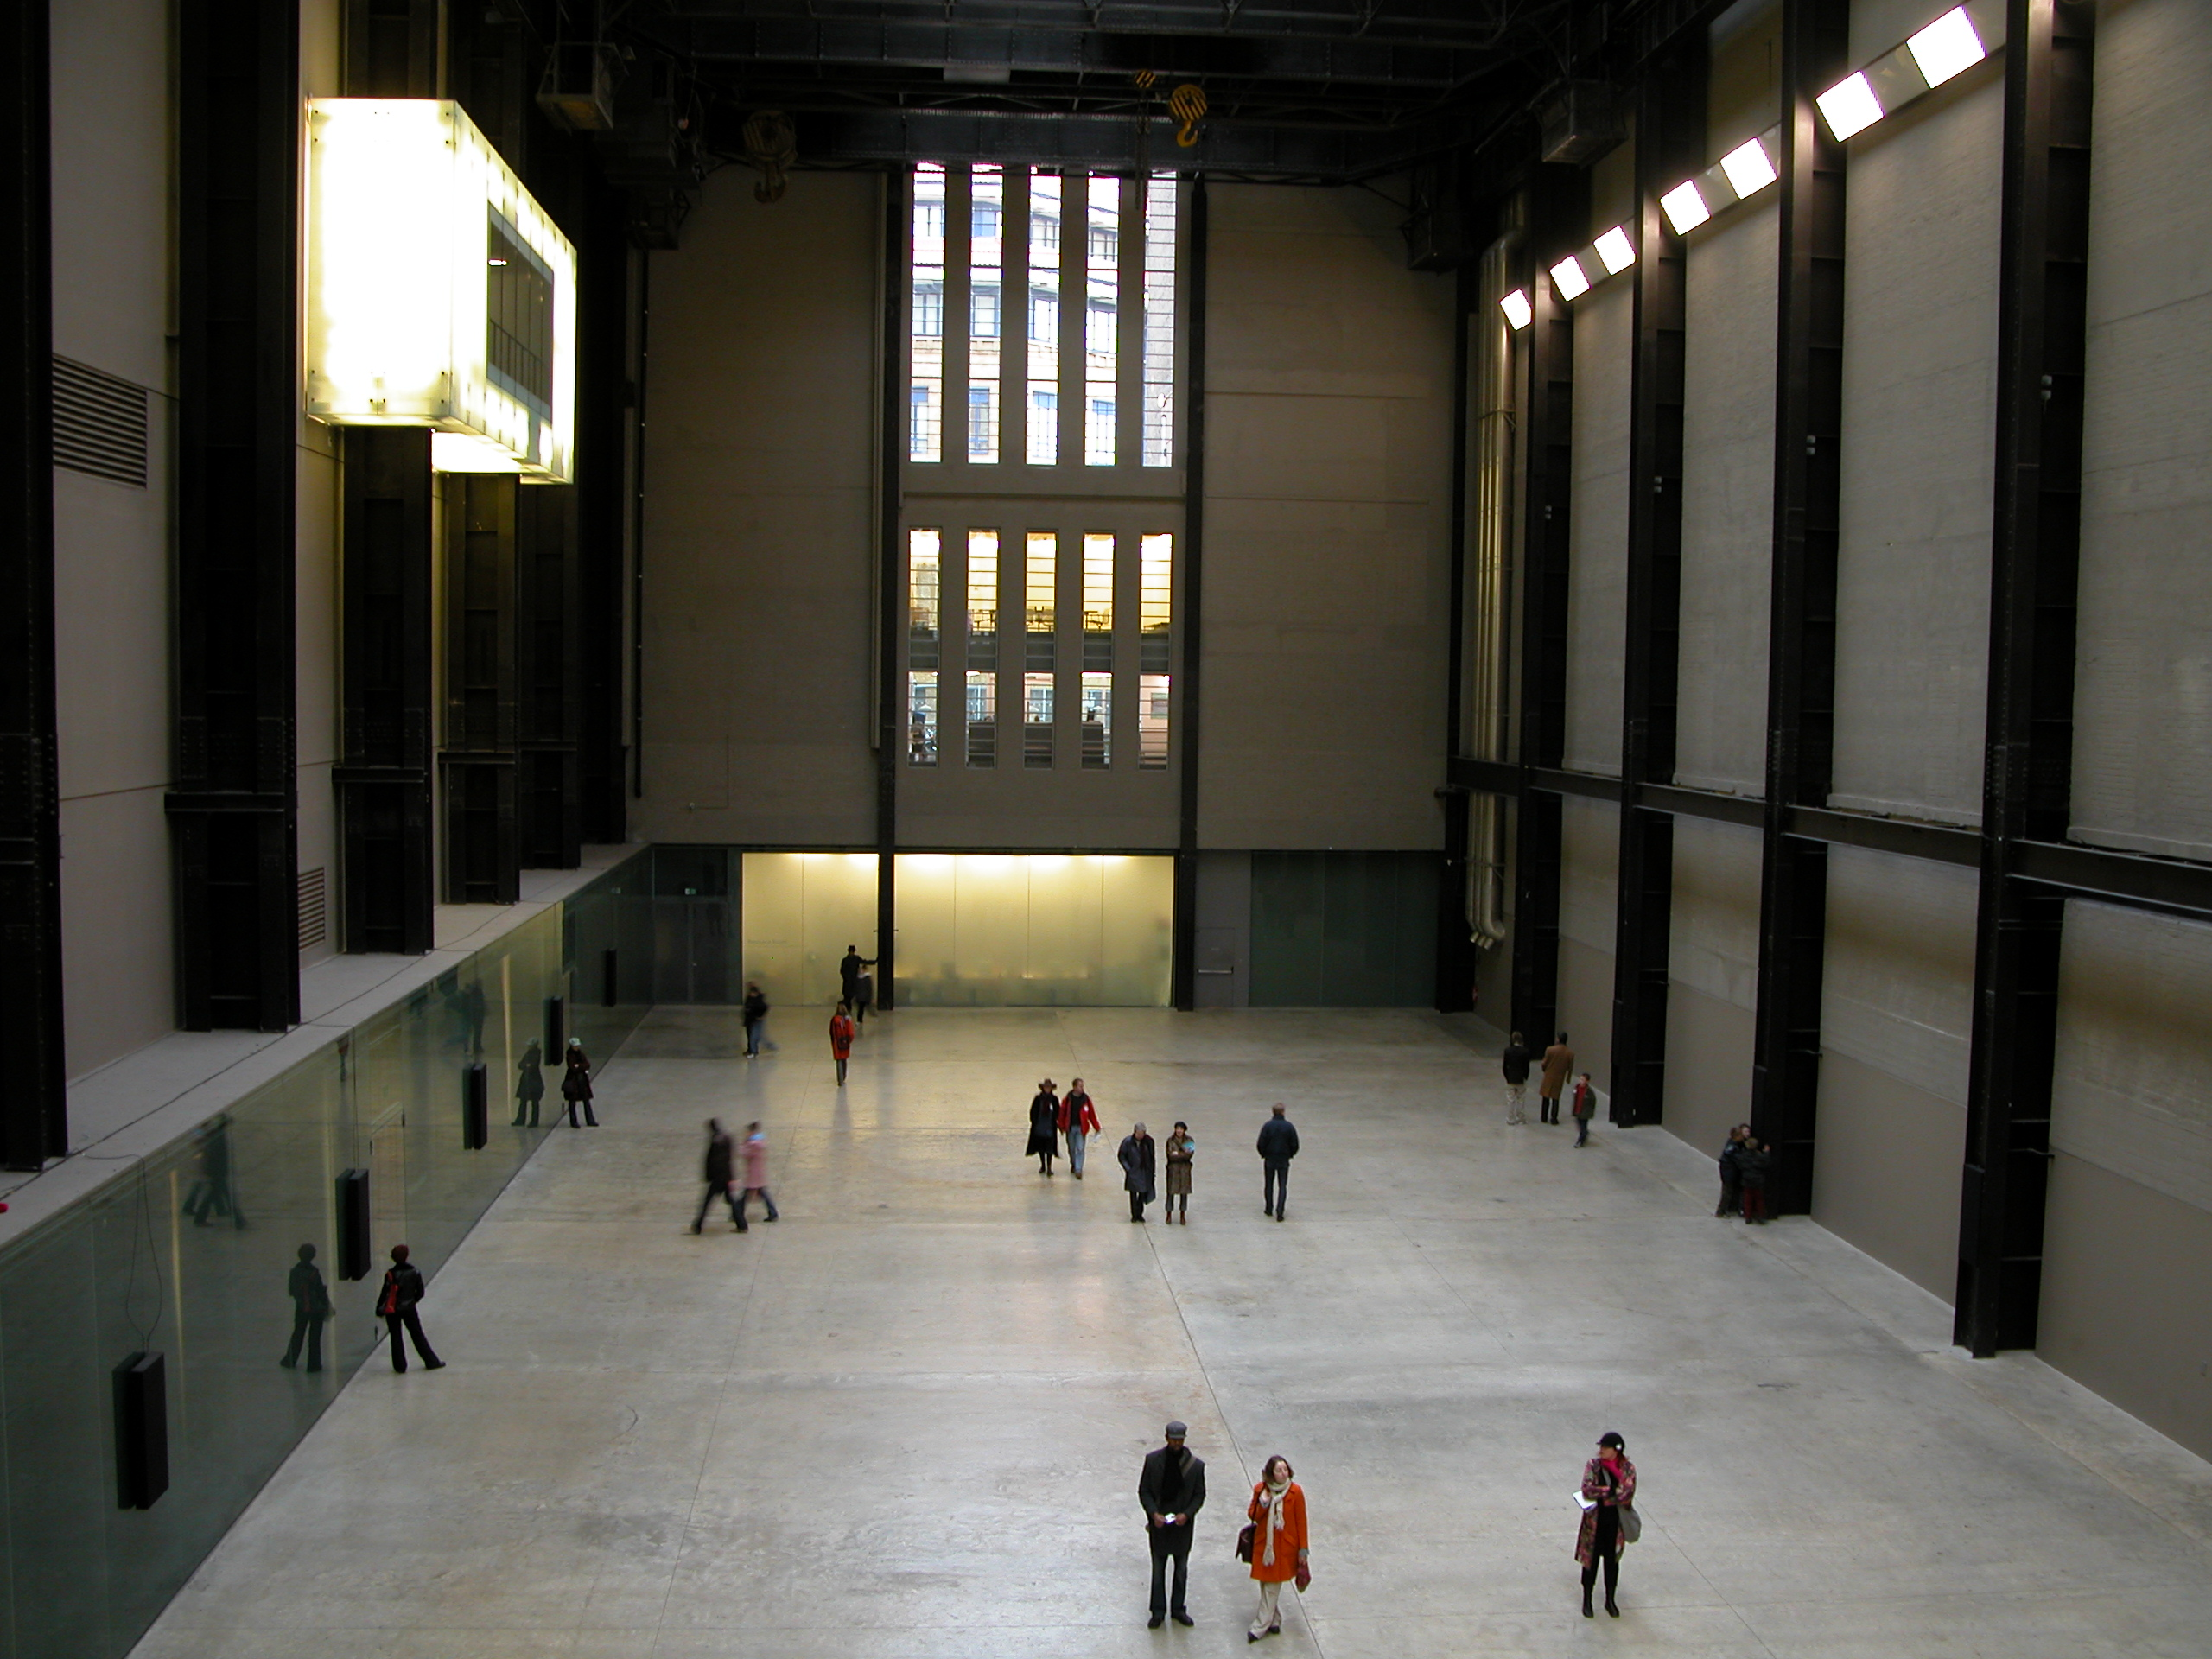 File:Tate modern.jpg - Wikimedia Commons